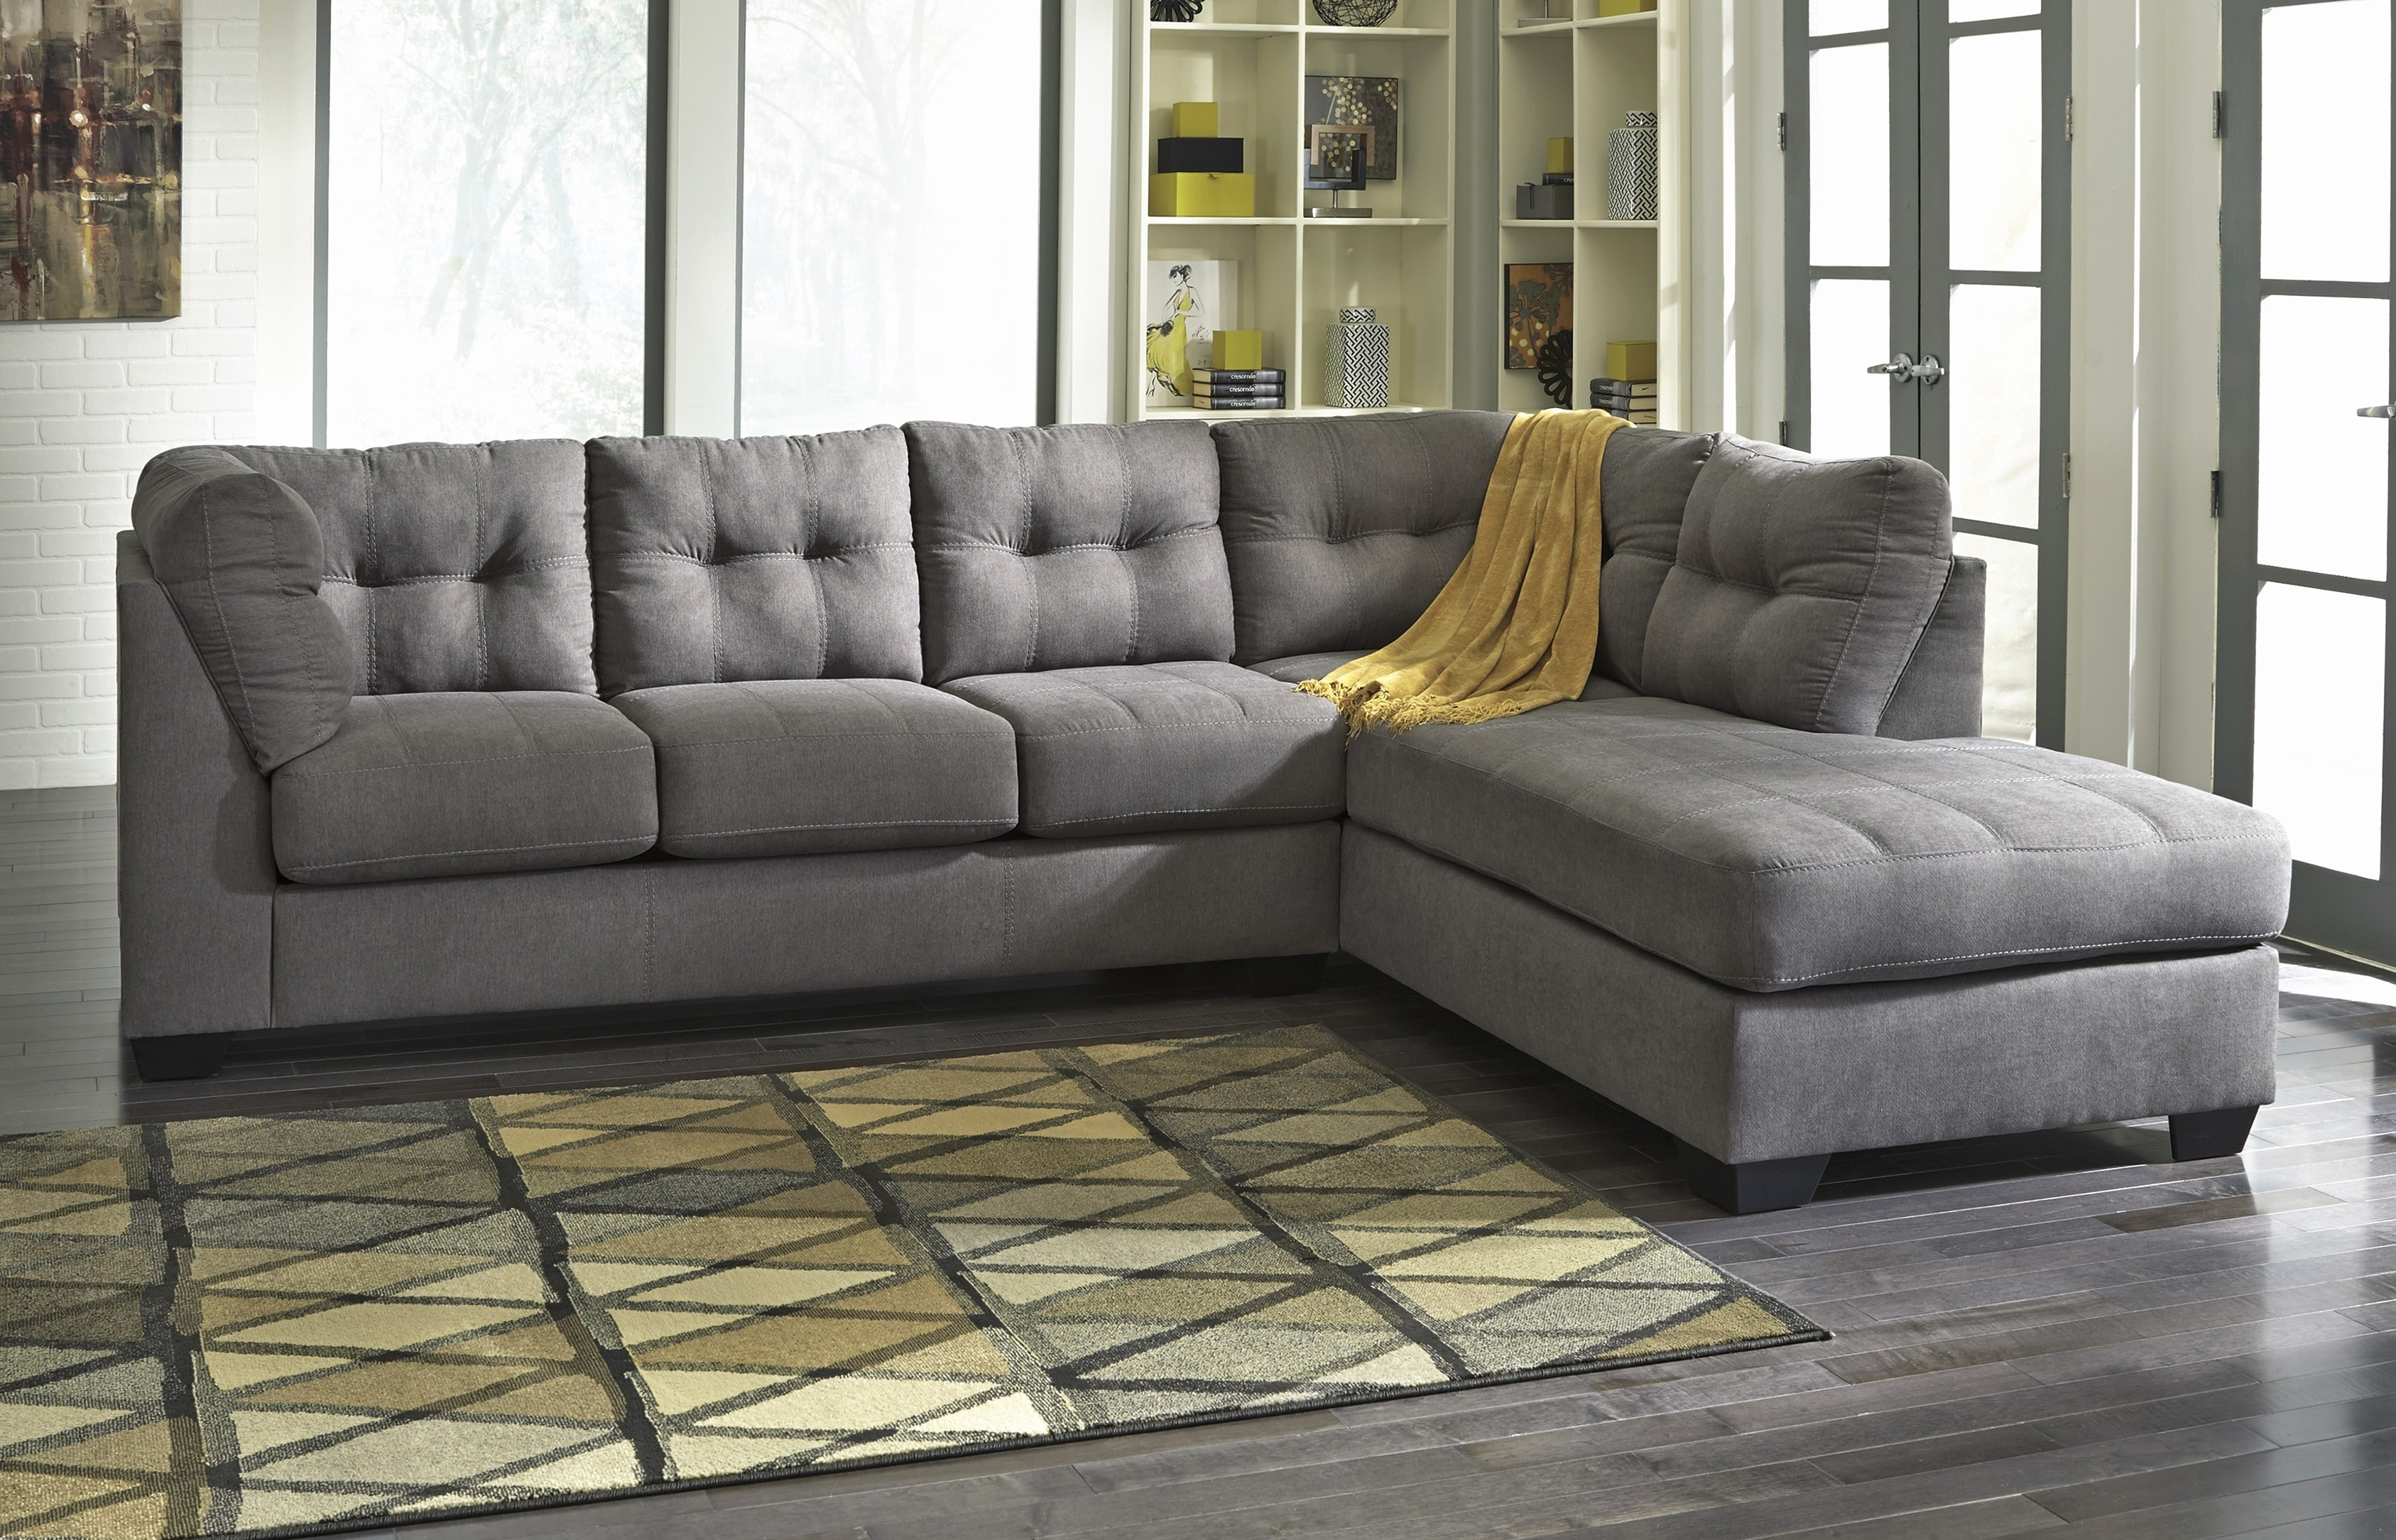 Unique Sectional Sleeper Sofa Ashley 2018 – Couches And Sofas Ideas regarding Sectional Sofas At Ashley (Image 15 of 15)